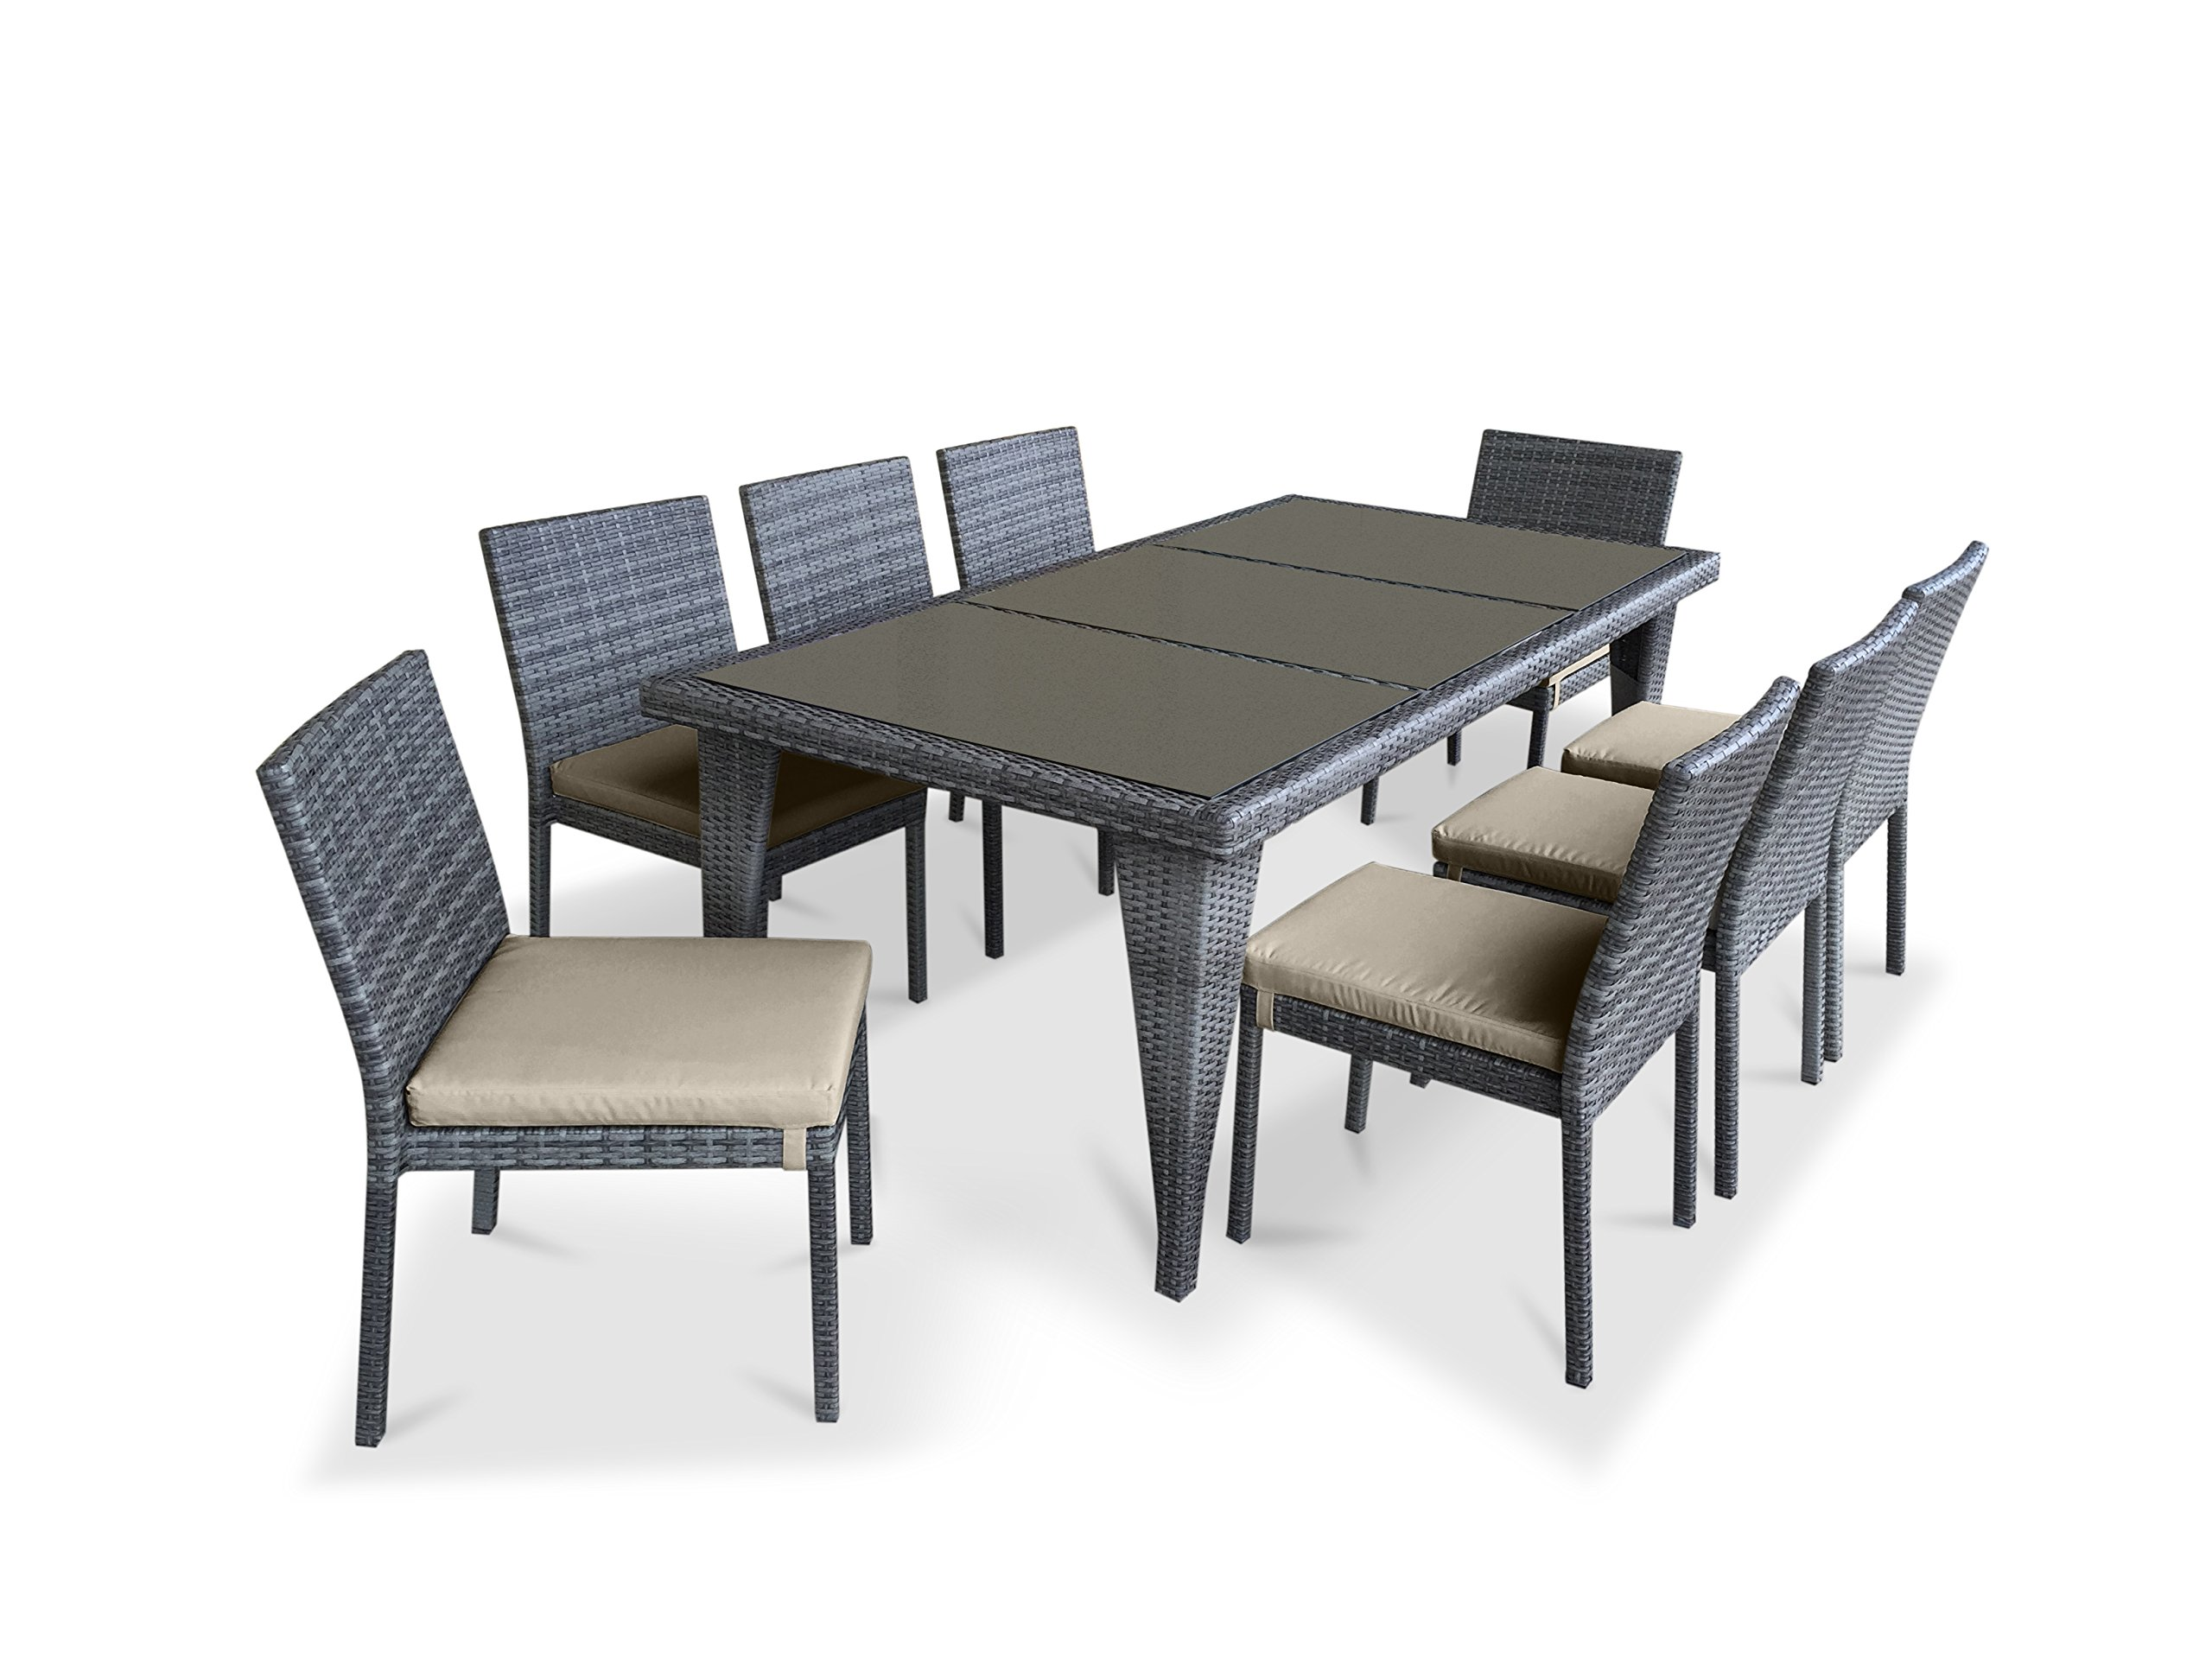 UrbanFurnishing.net - 9 Piece Wicker Outdoor Patio Dining Set - Gray Wicker/Beige - Sleek Ultra Modern Wicker Design with Gradient Shades of Grays Chairs are stackable and comes with detachable cushions. Cushions are comfortable, water resistant and easy to maintain with built-in zipper for easy removal and cleaning. - patio-furniture, dining-sets-patio-funiture, patio - 81aojRrenoL -